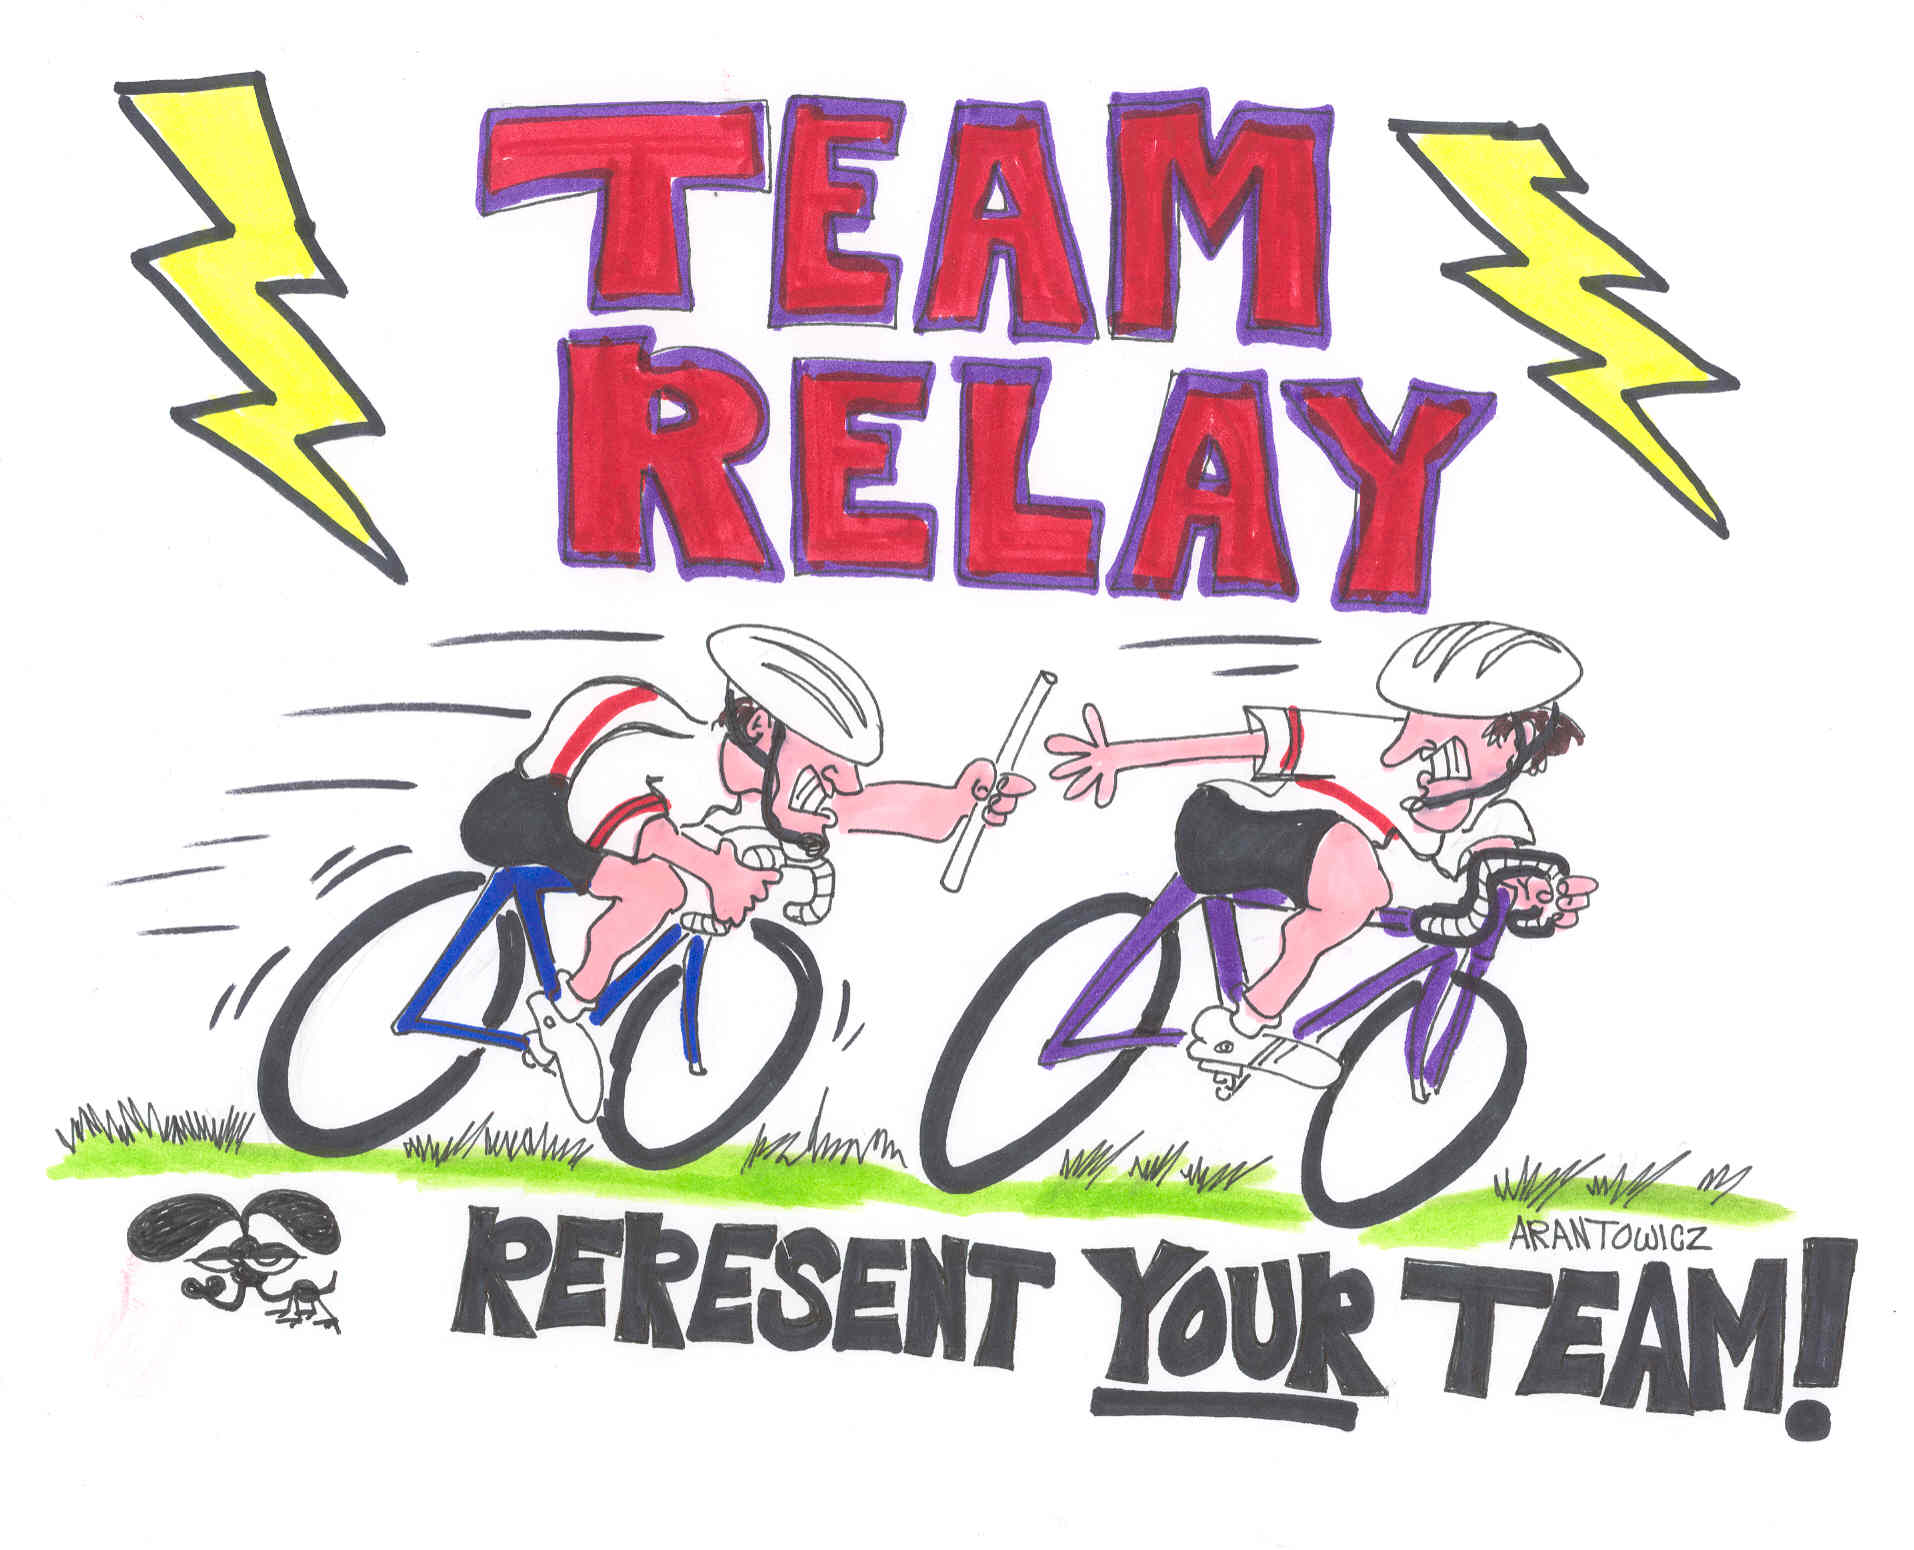 teamrelay.jpg